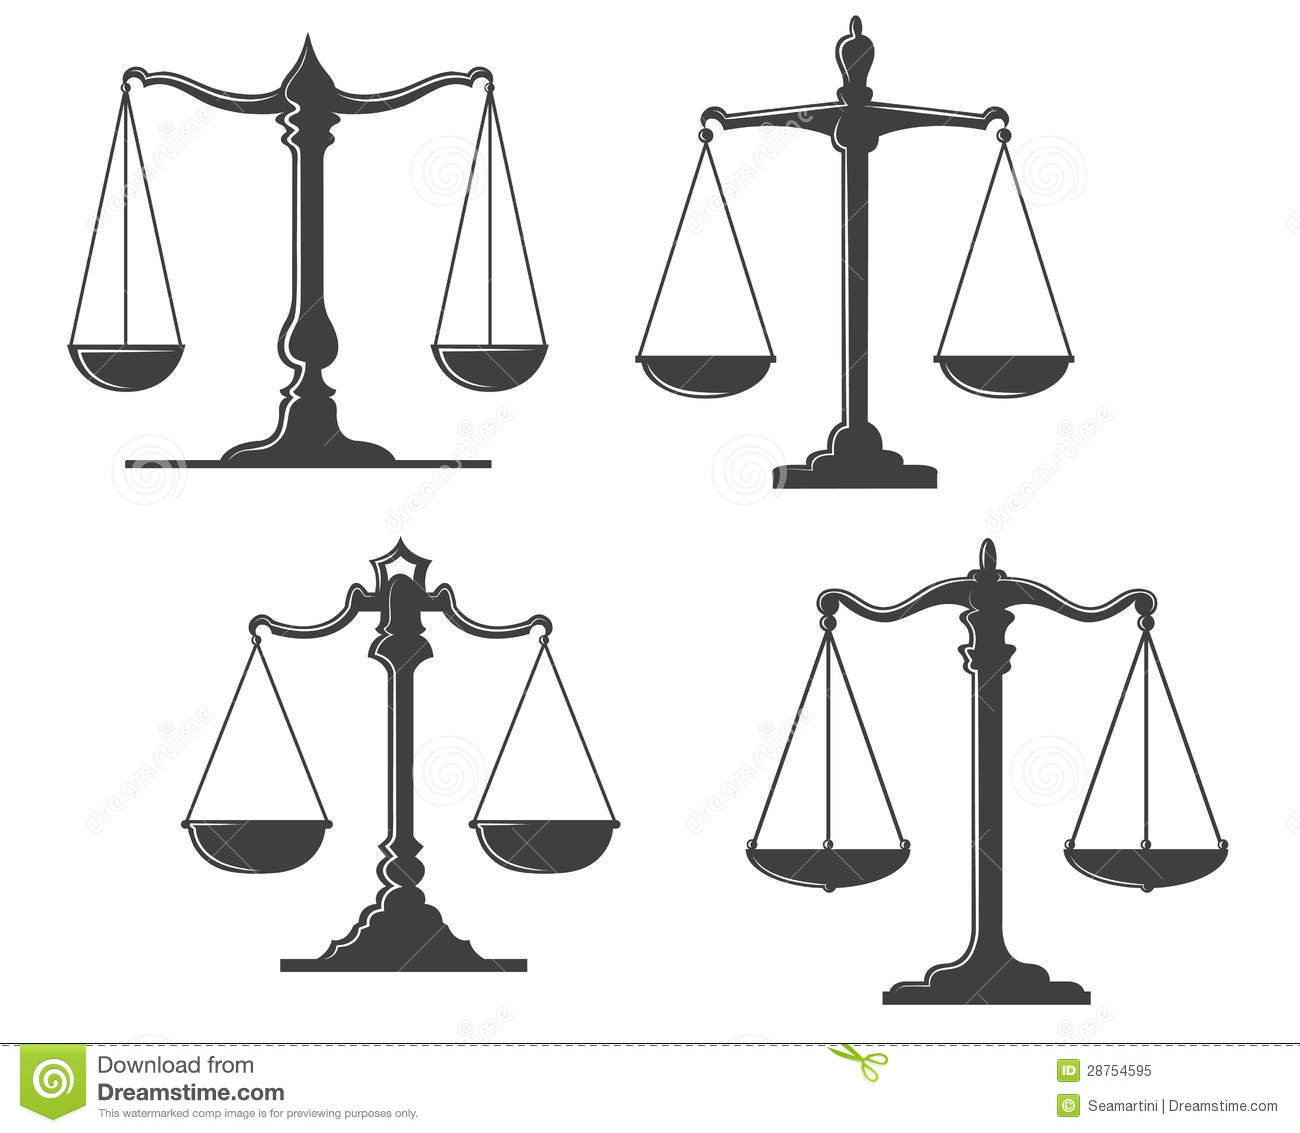 Vintage justice scales stock vector. Illustration of case ...